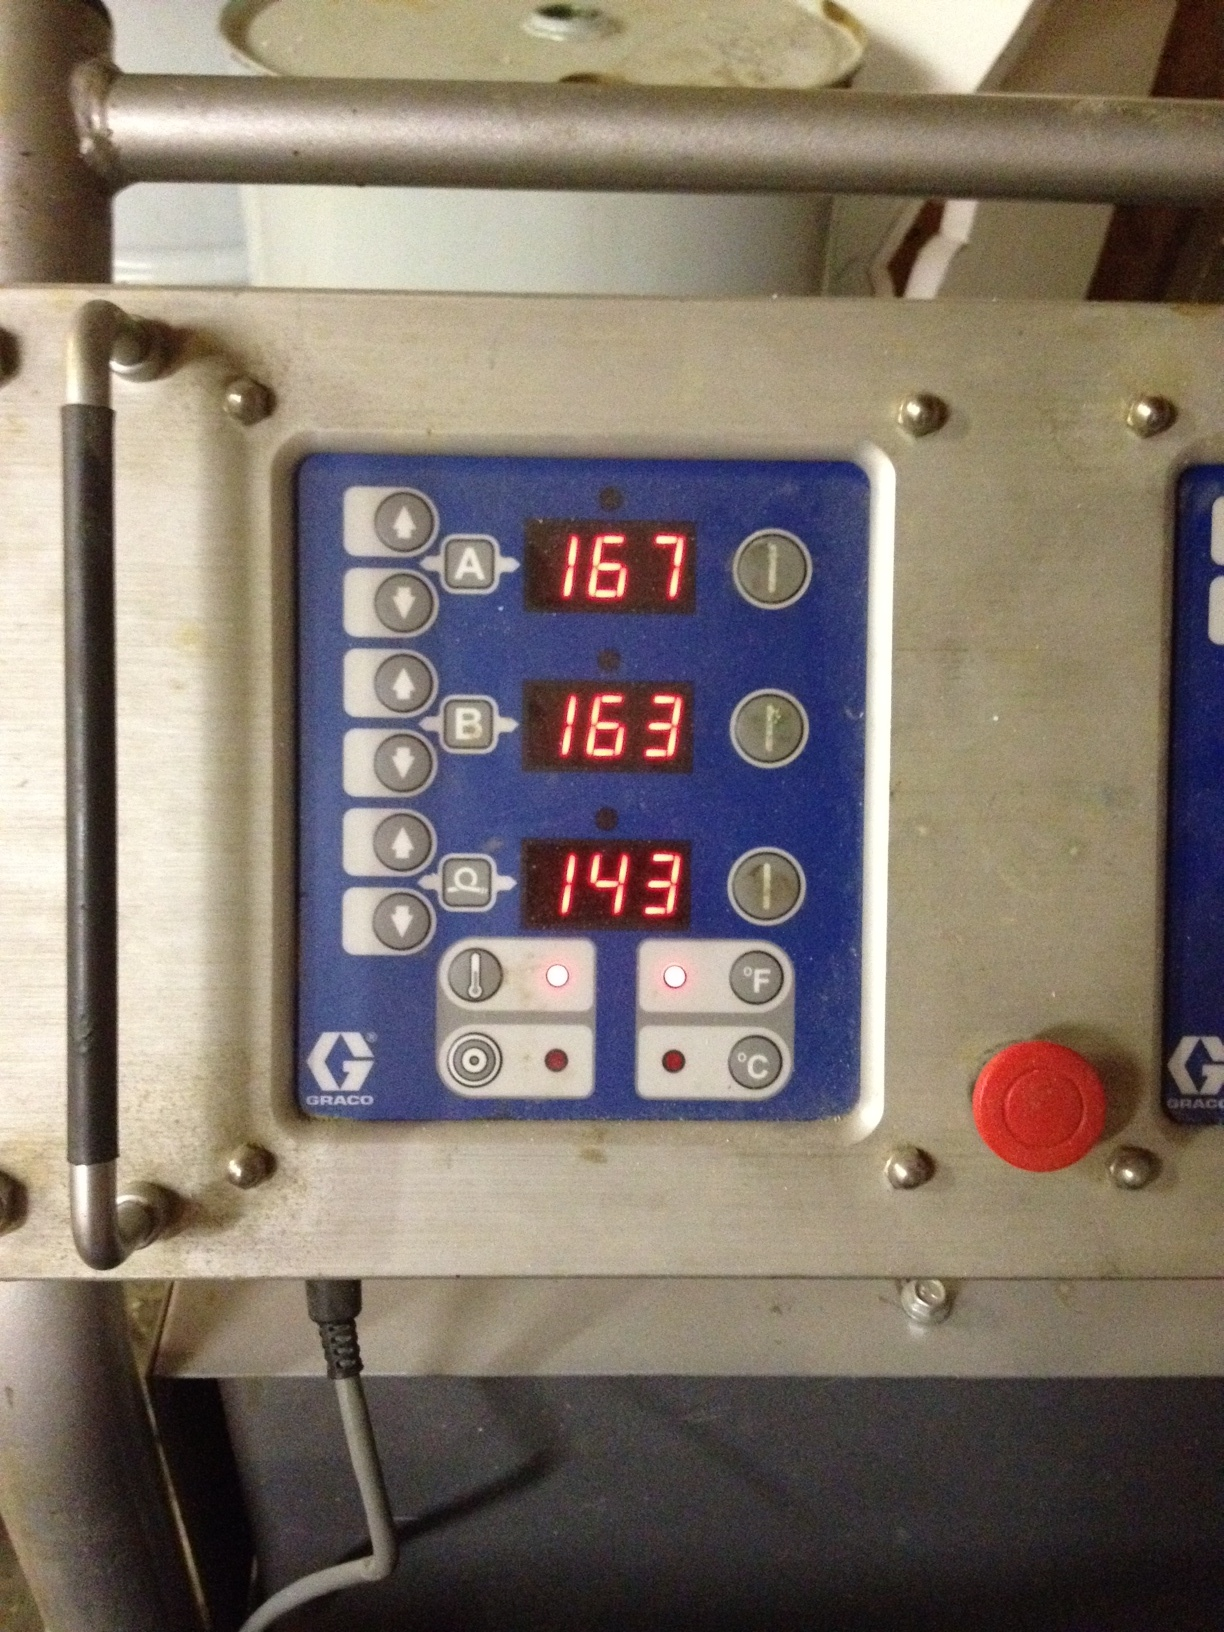 Temperature during manufacture